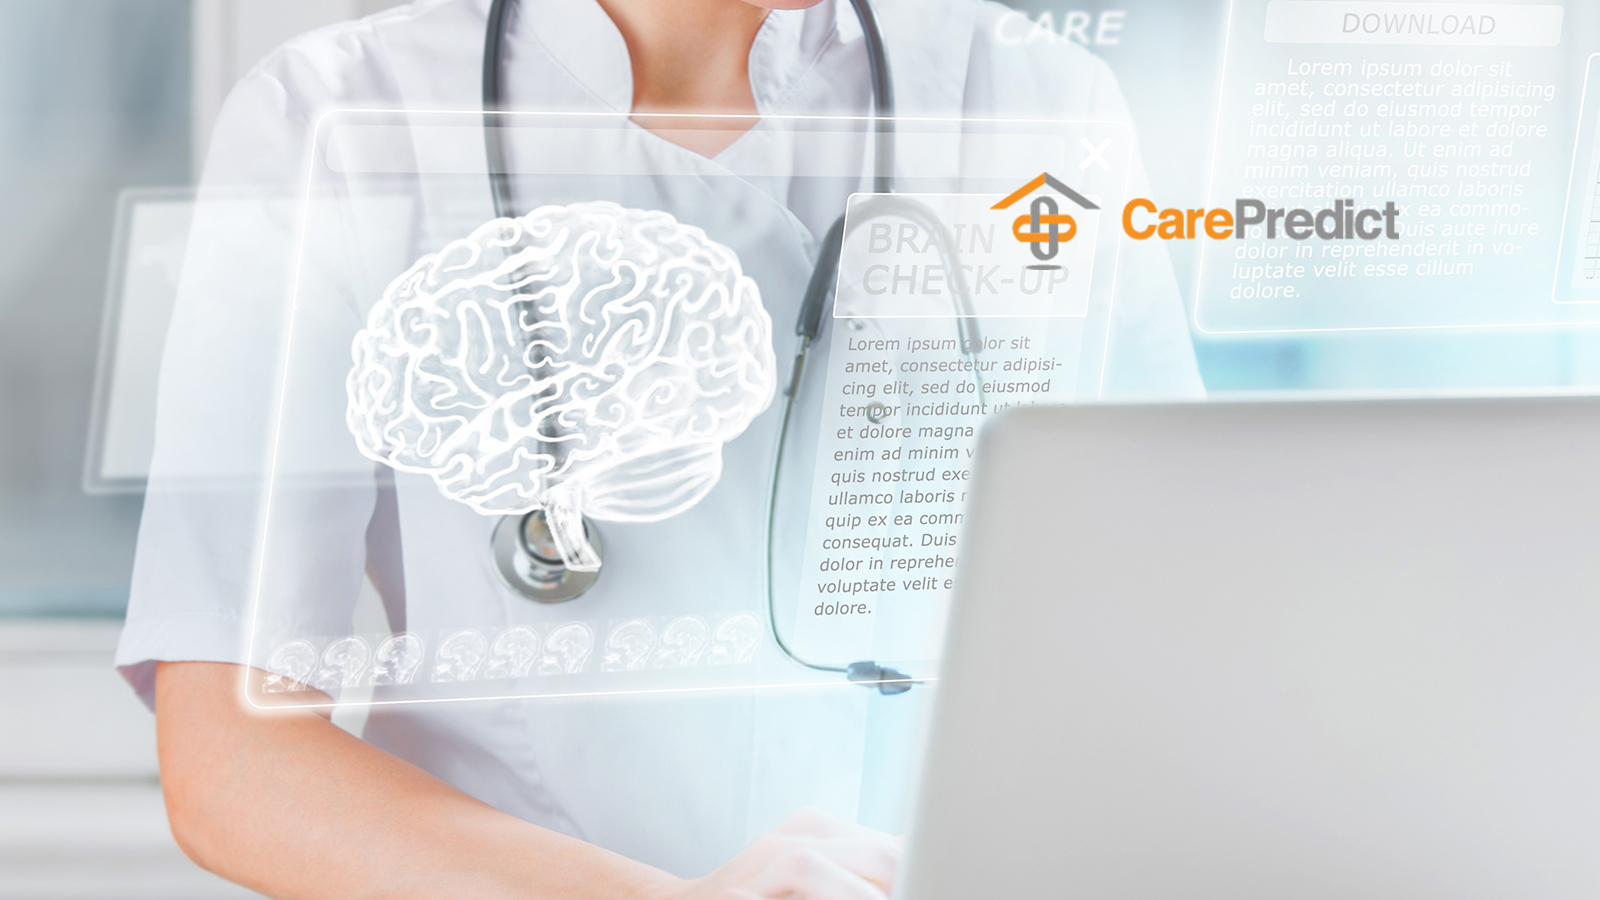 CarePredict Launches AI-Powered Platform for Seniors Aging at Home